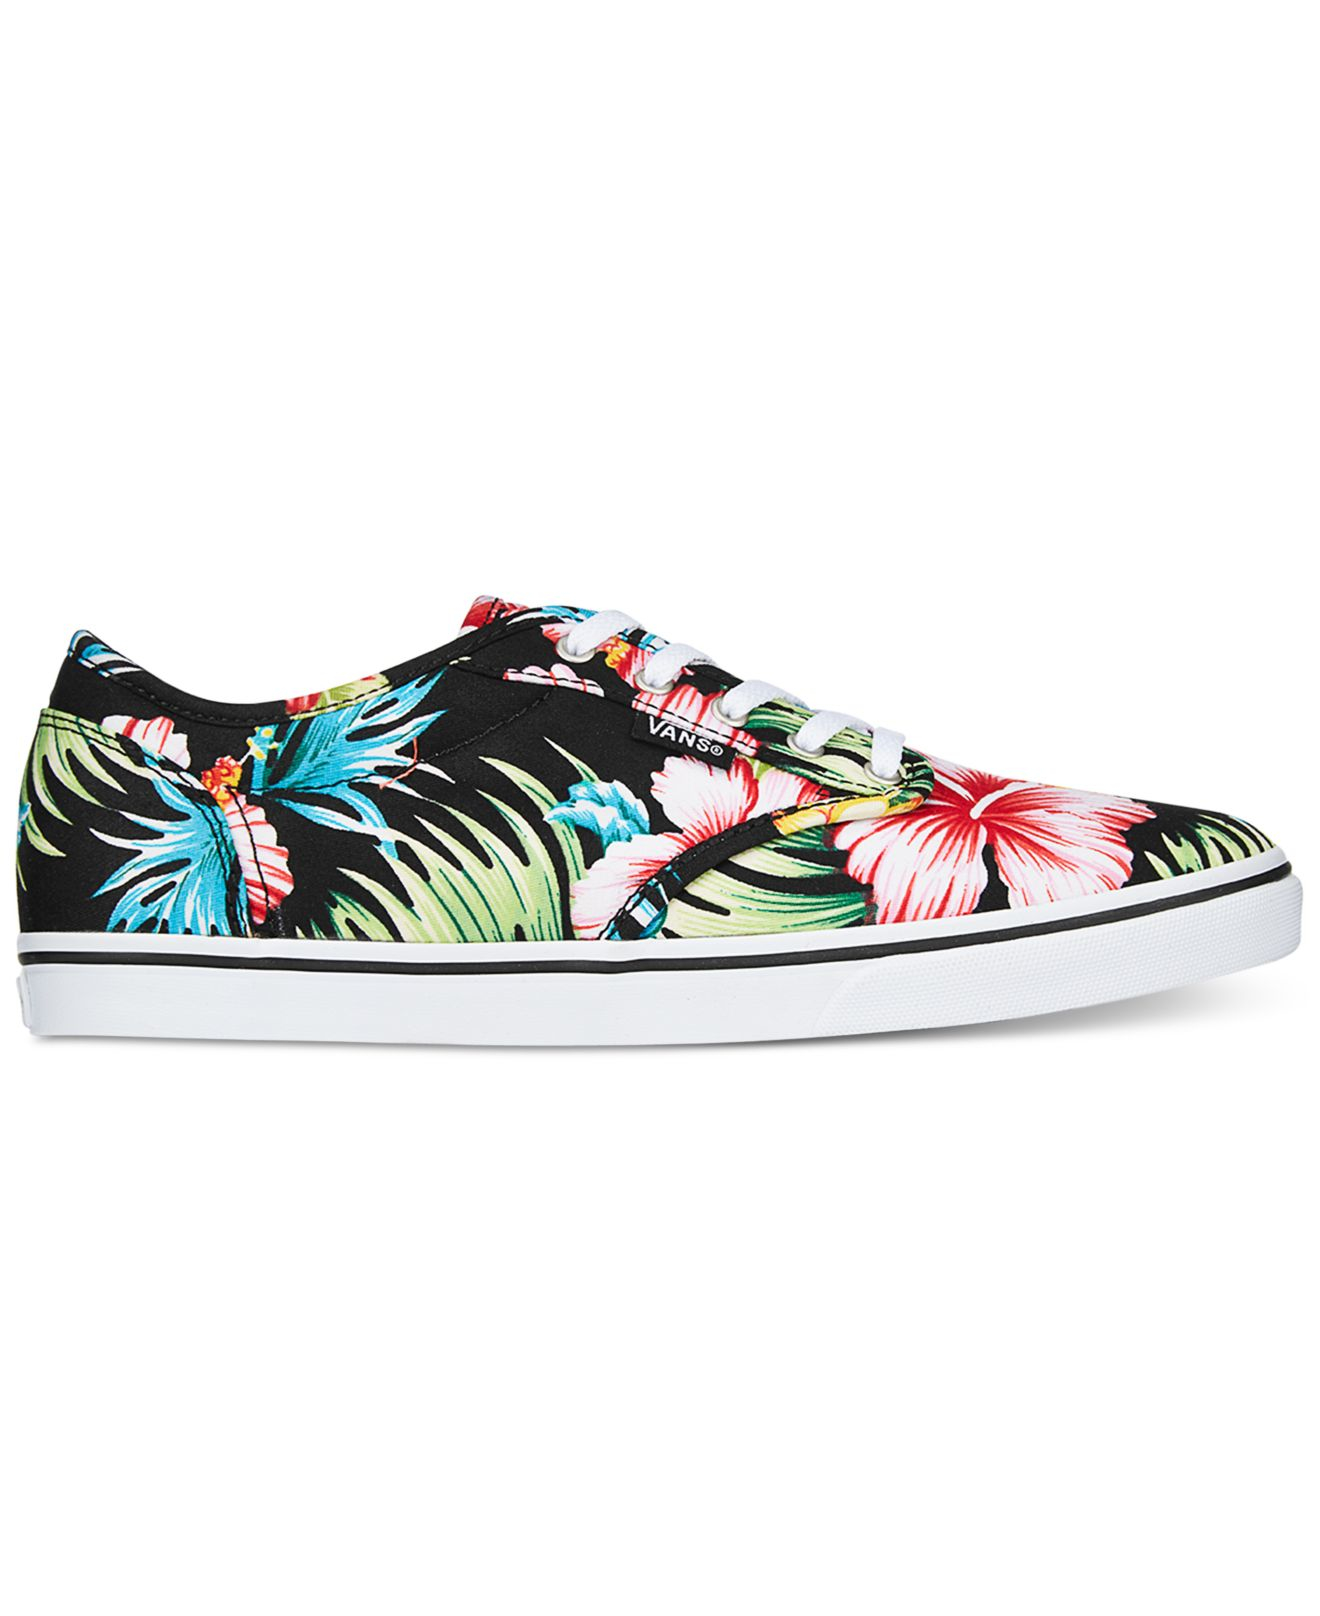 vans atwood shoes floral